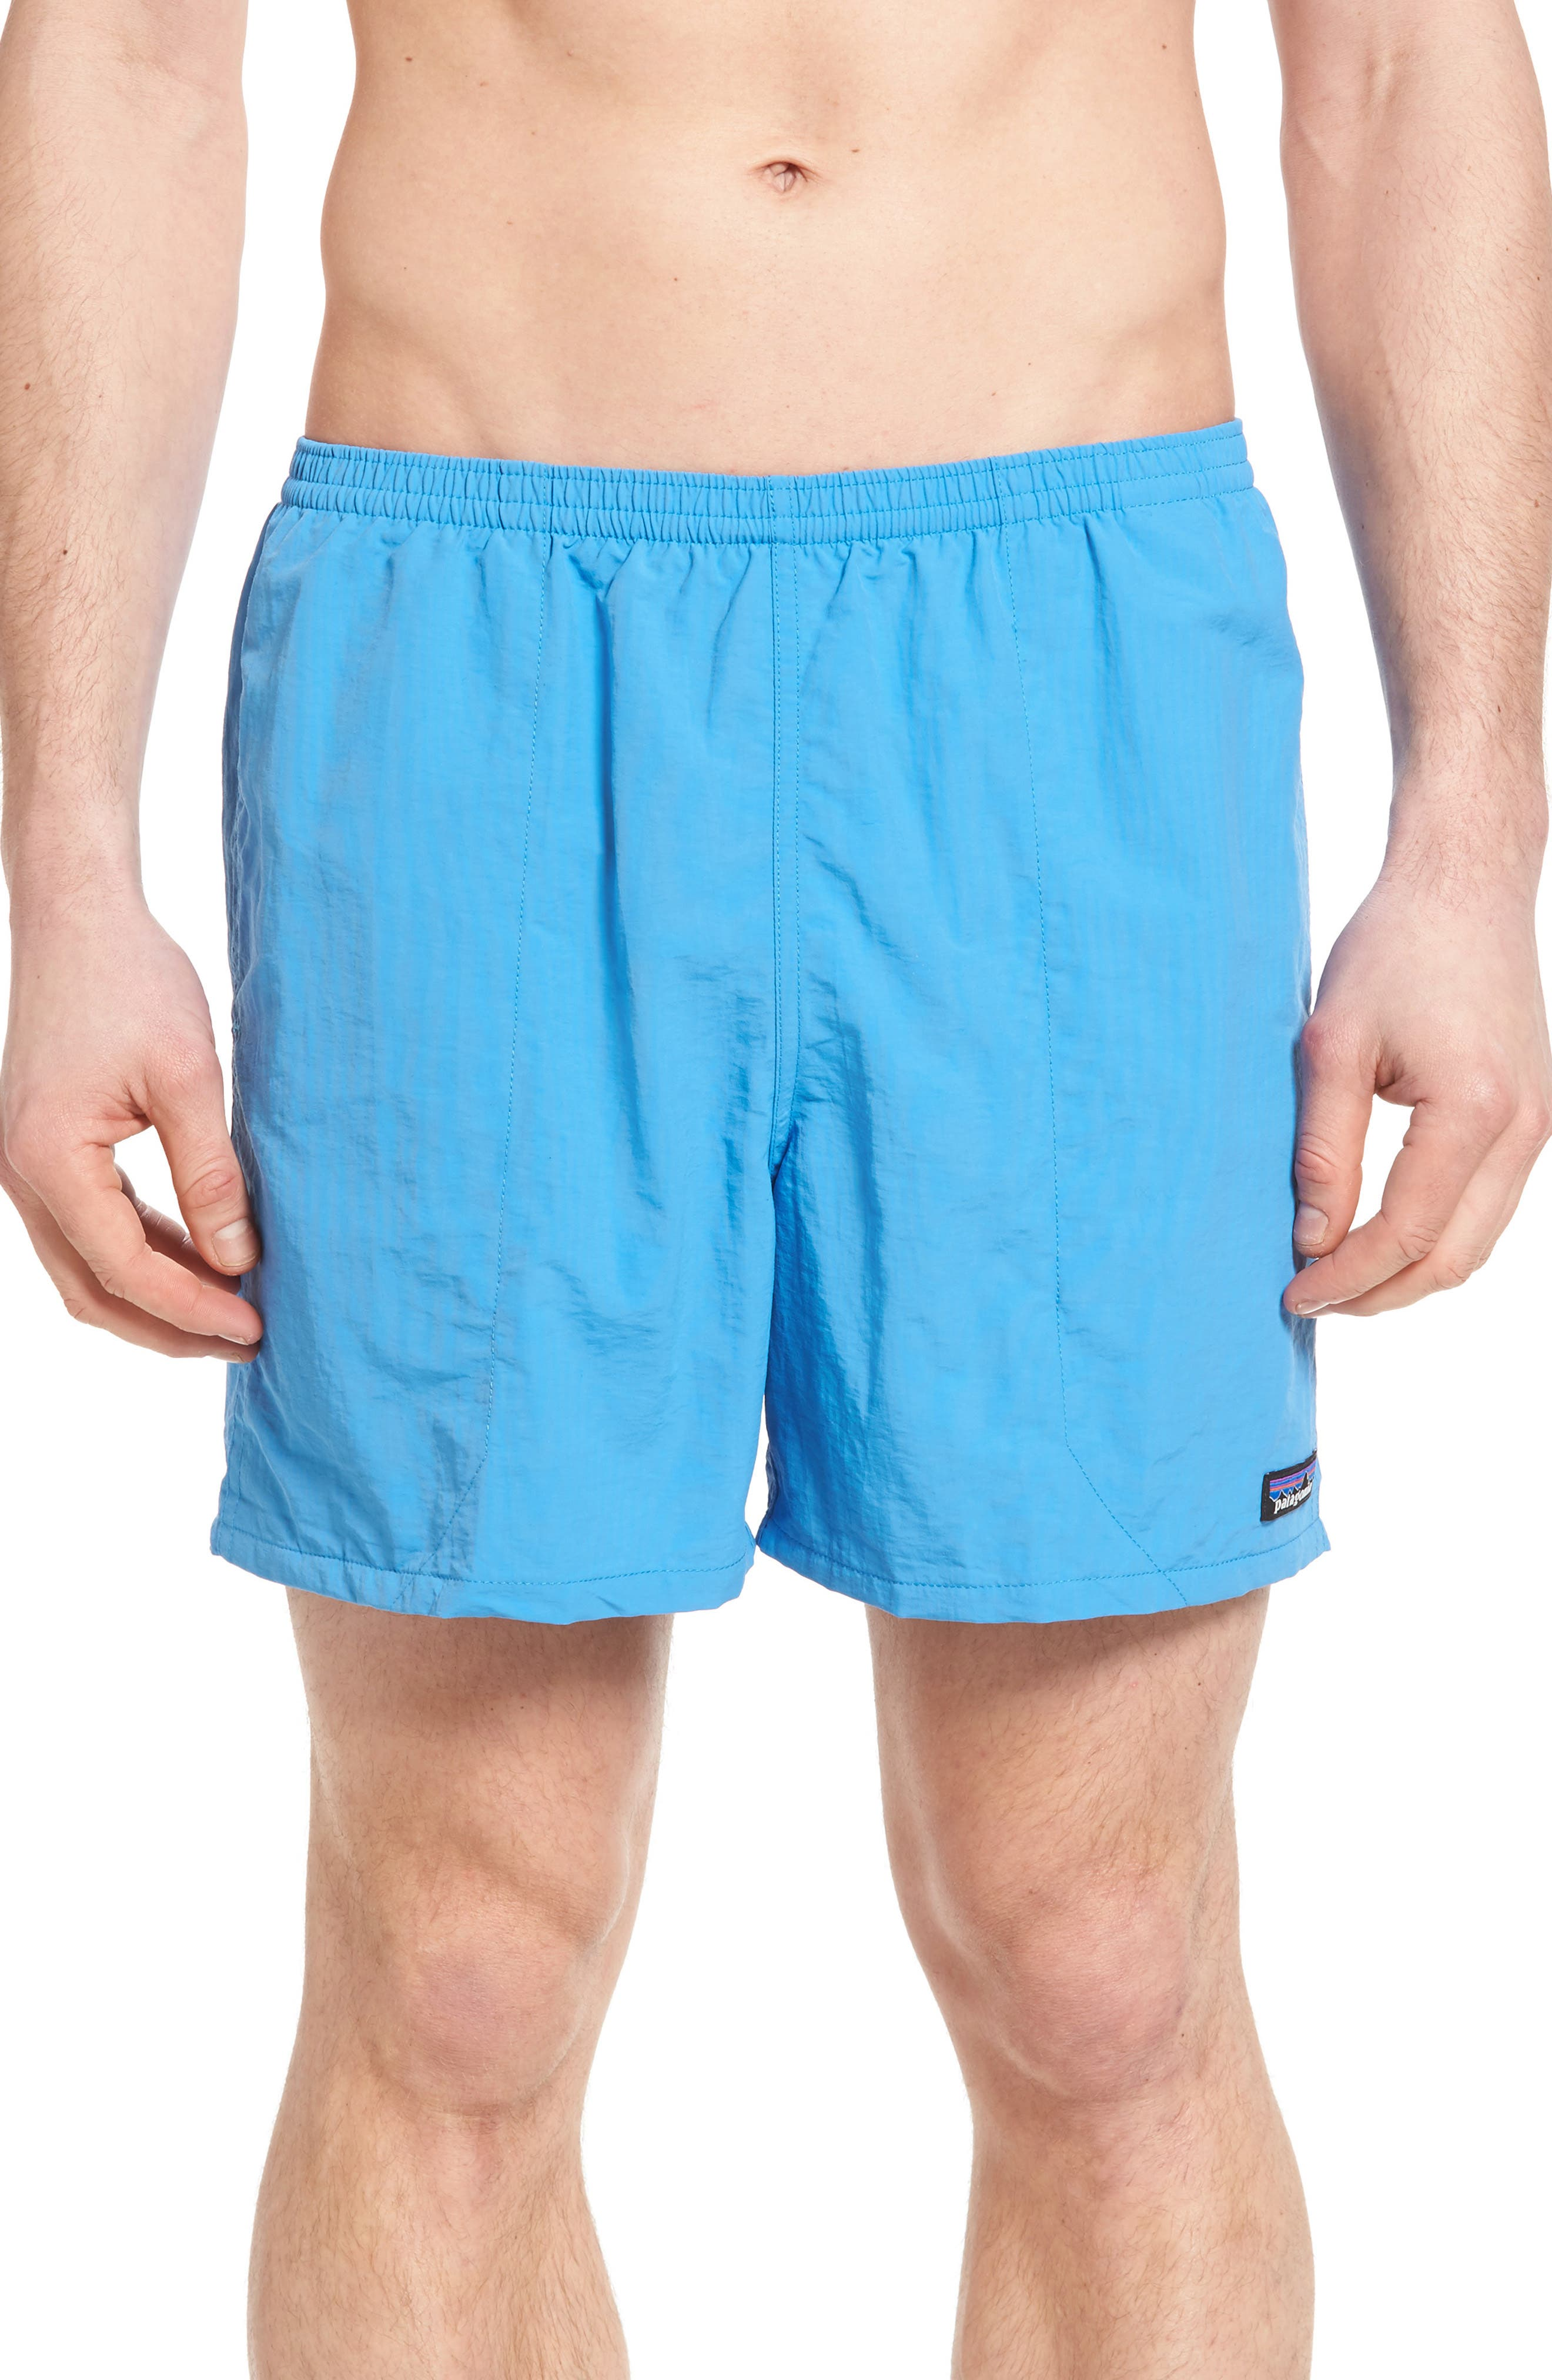 Patagonia Baggies Swim Trunks